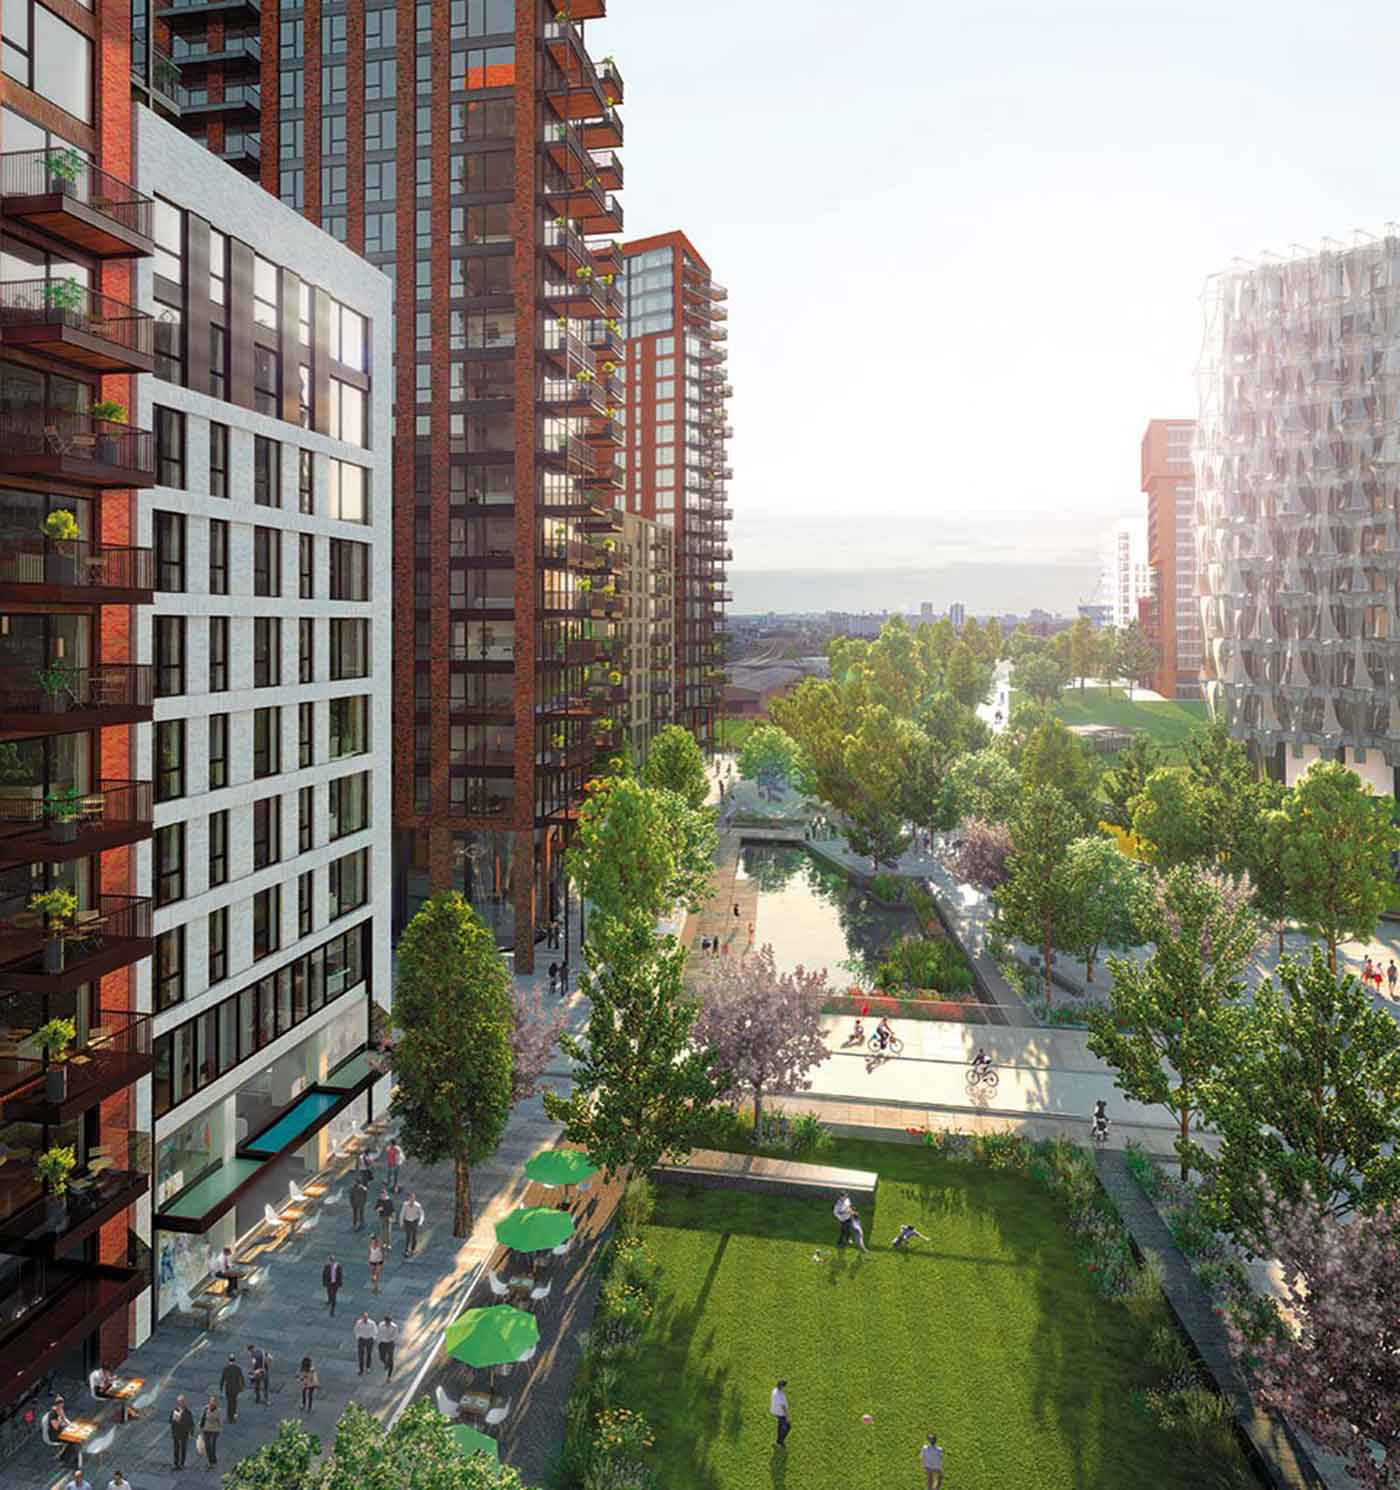 Embassy Park Apartments: Embassy Gardens Development, London